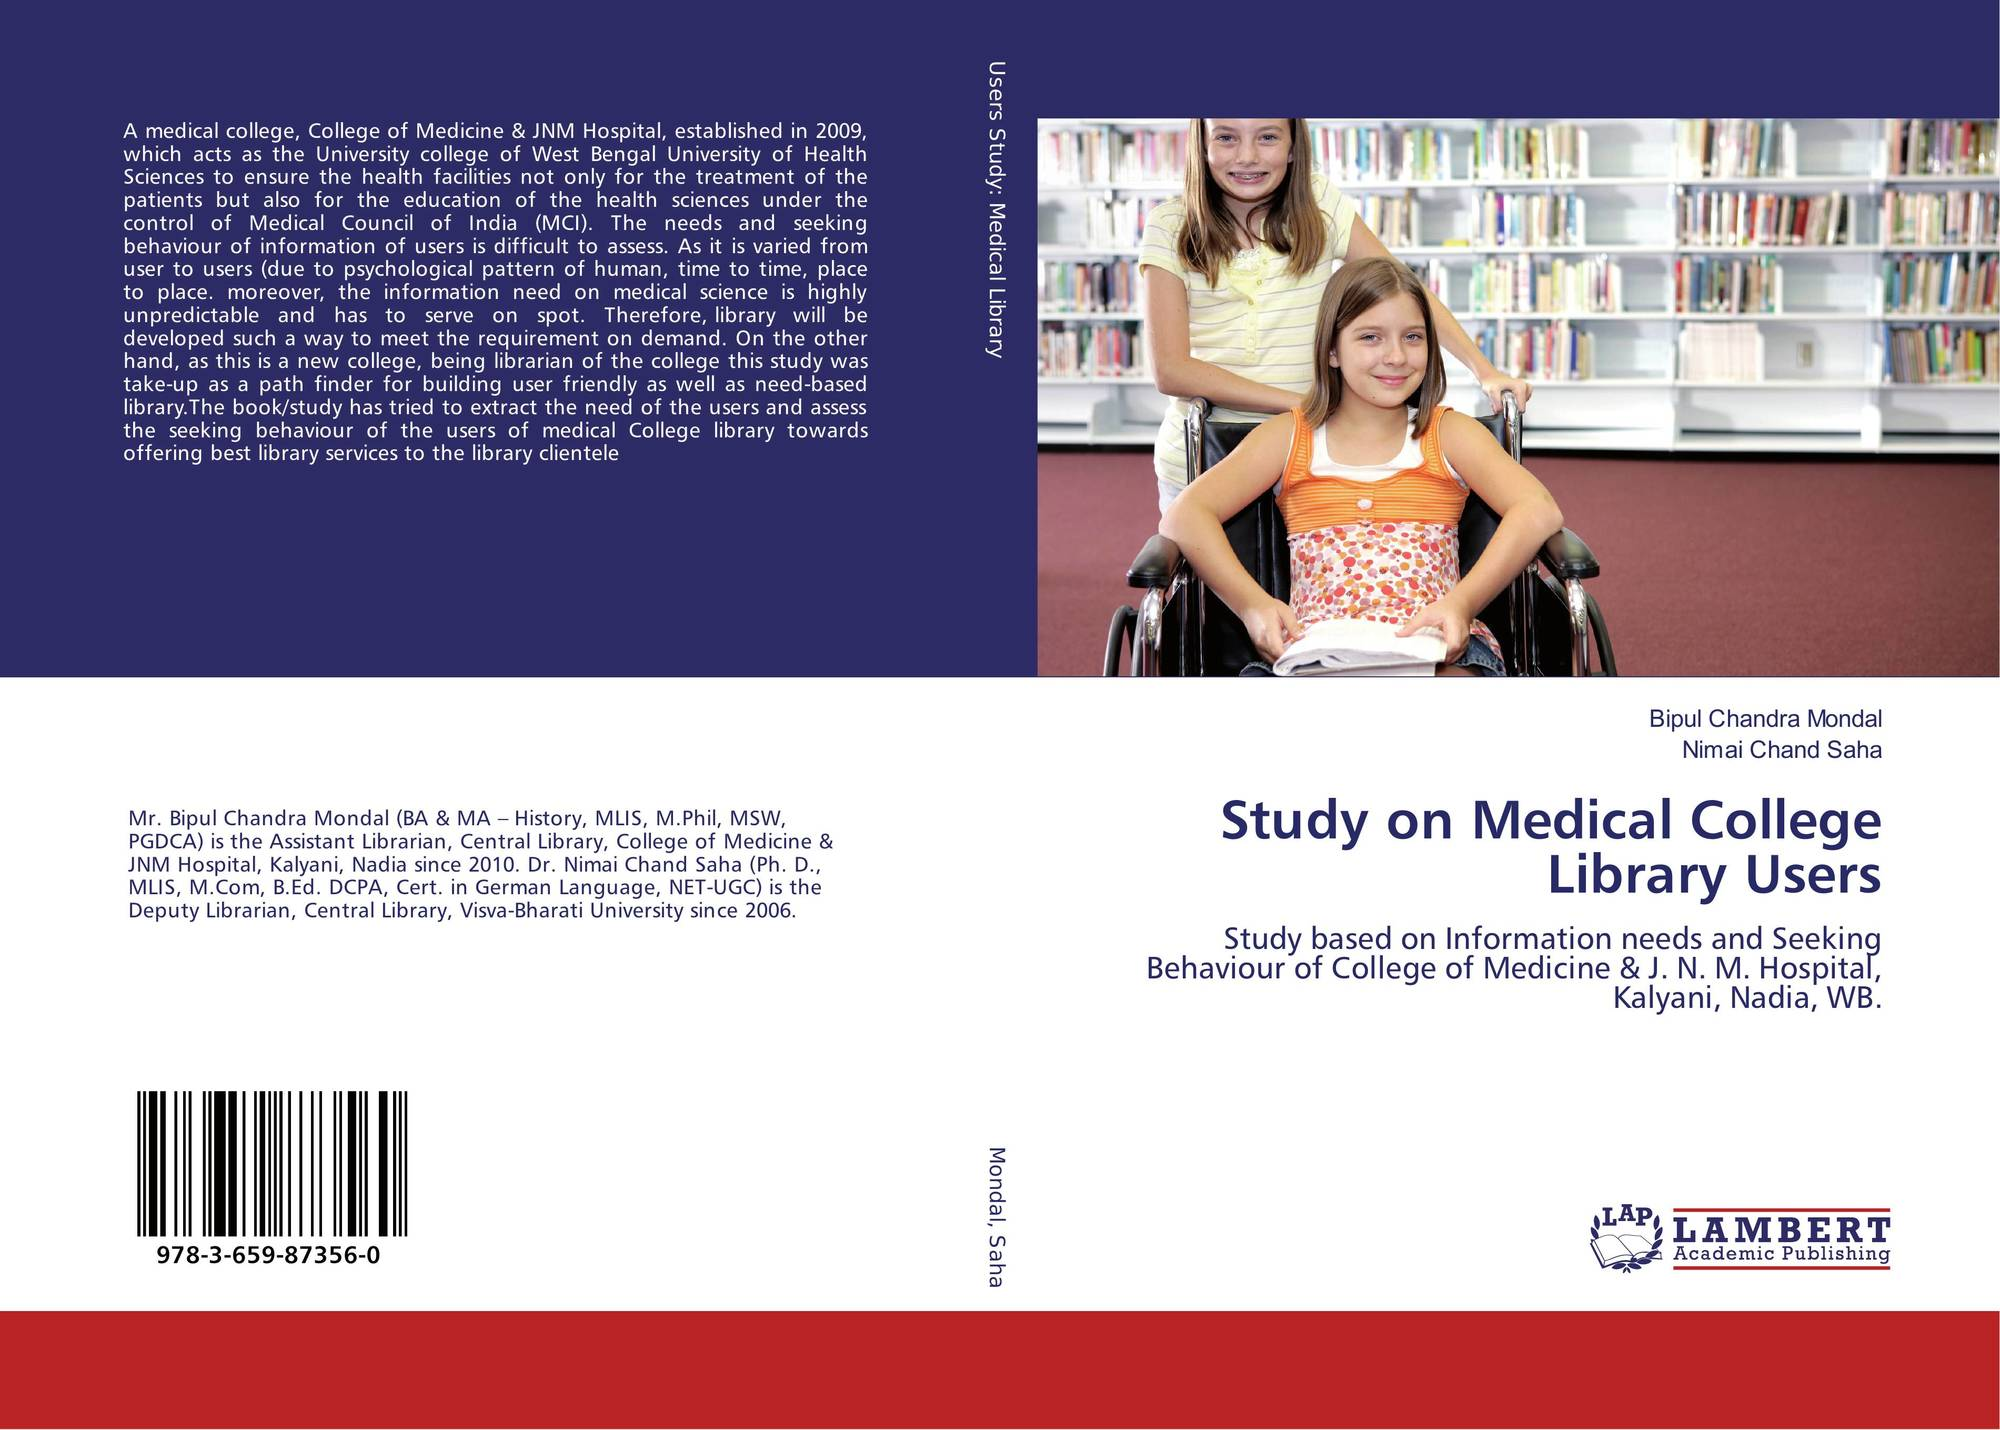 thesis of medical college libraries